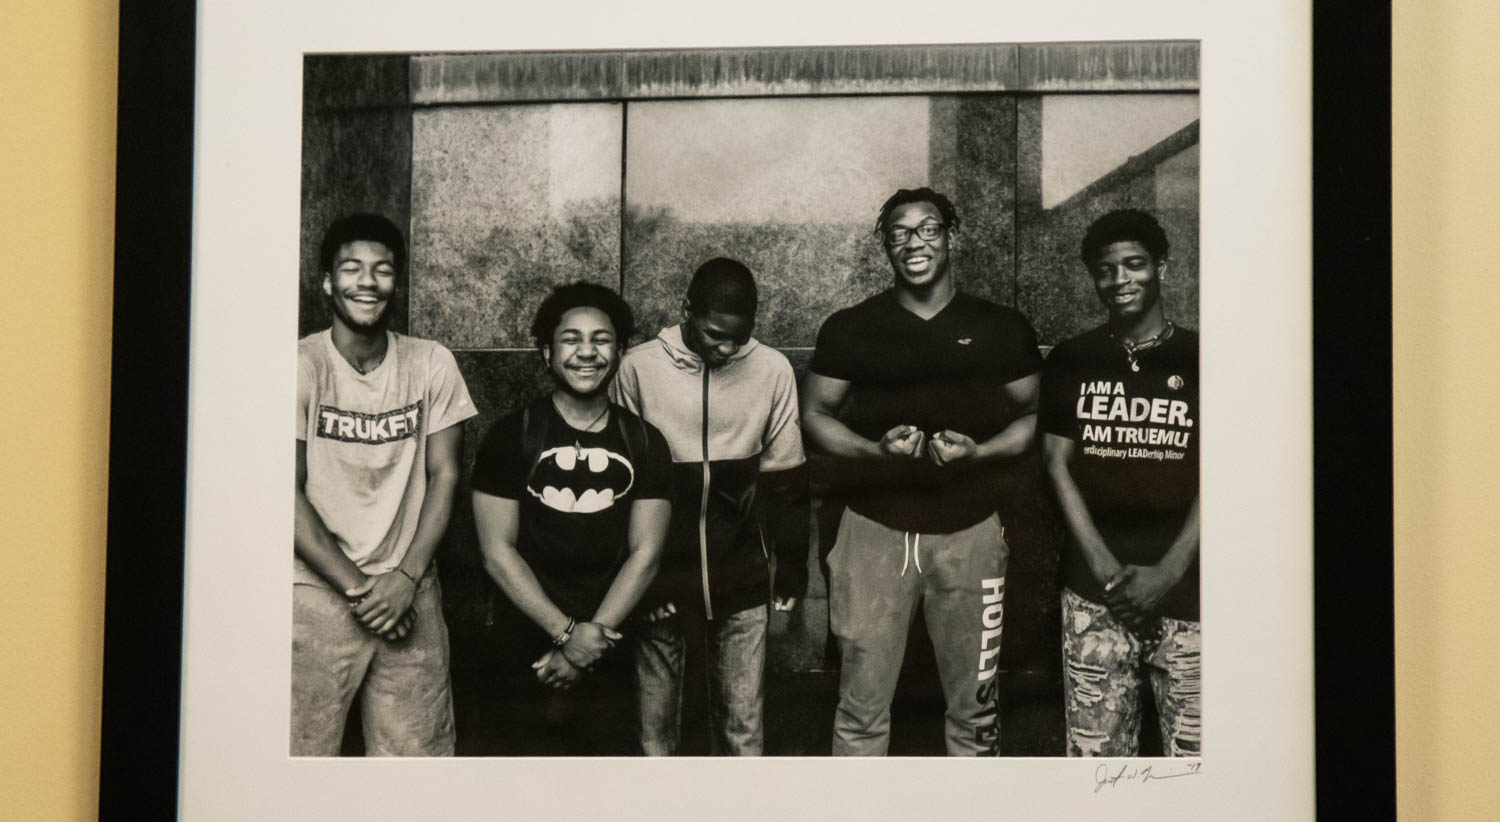 A black and white photograph that shows five young black men smiling and laughing